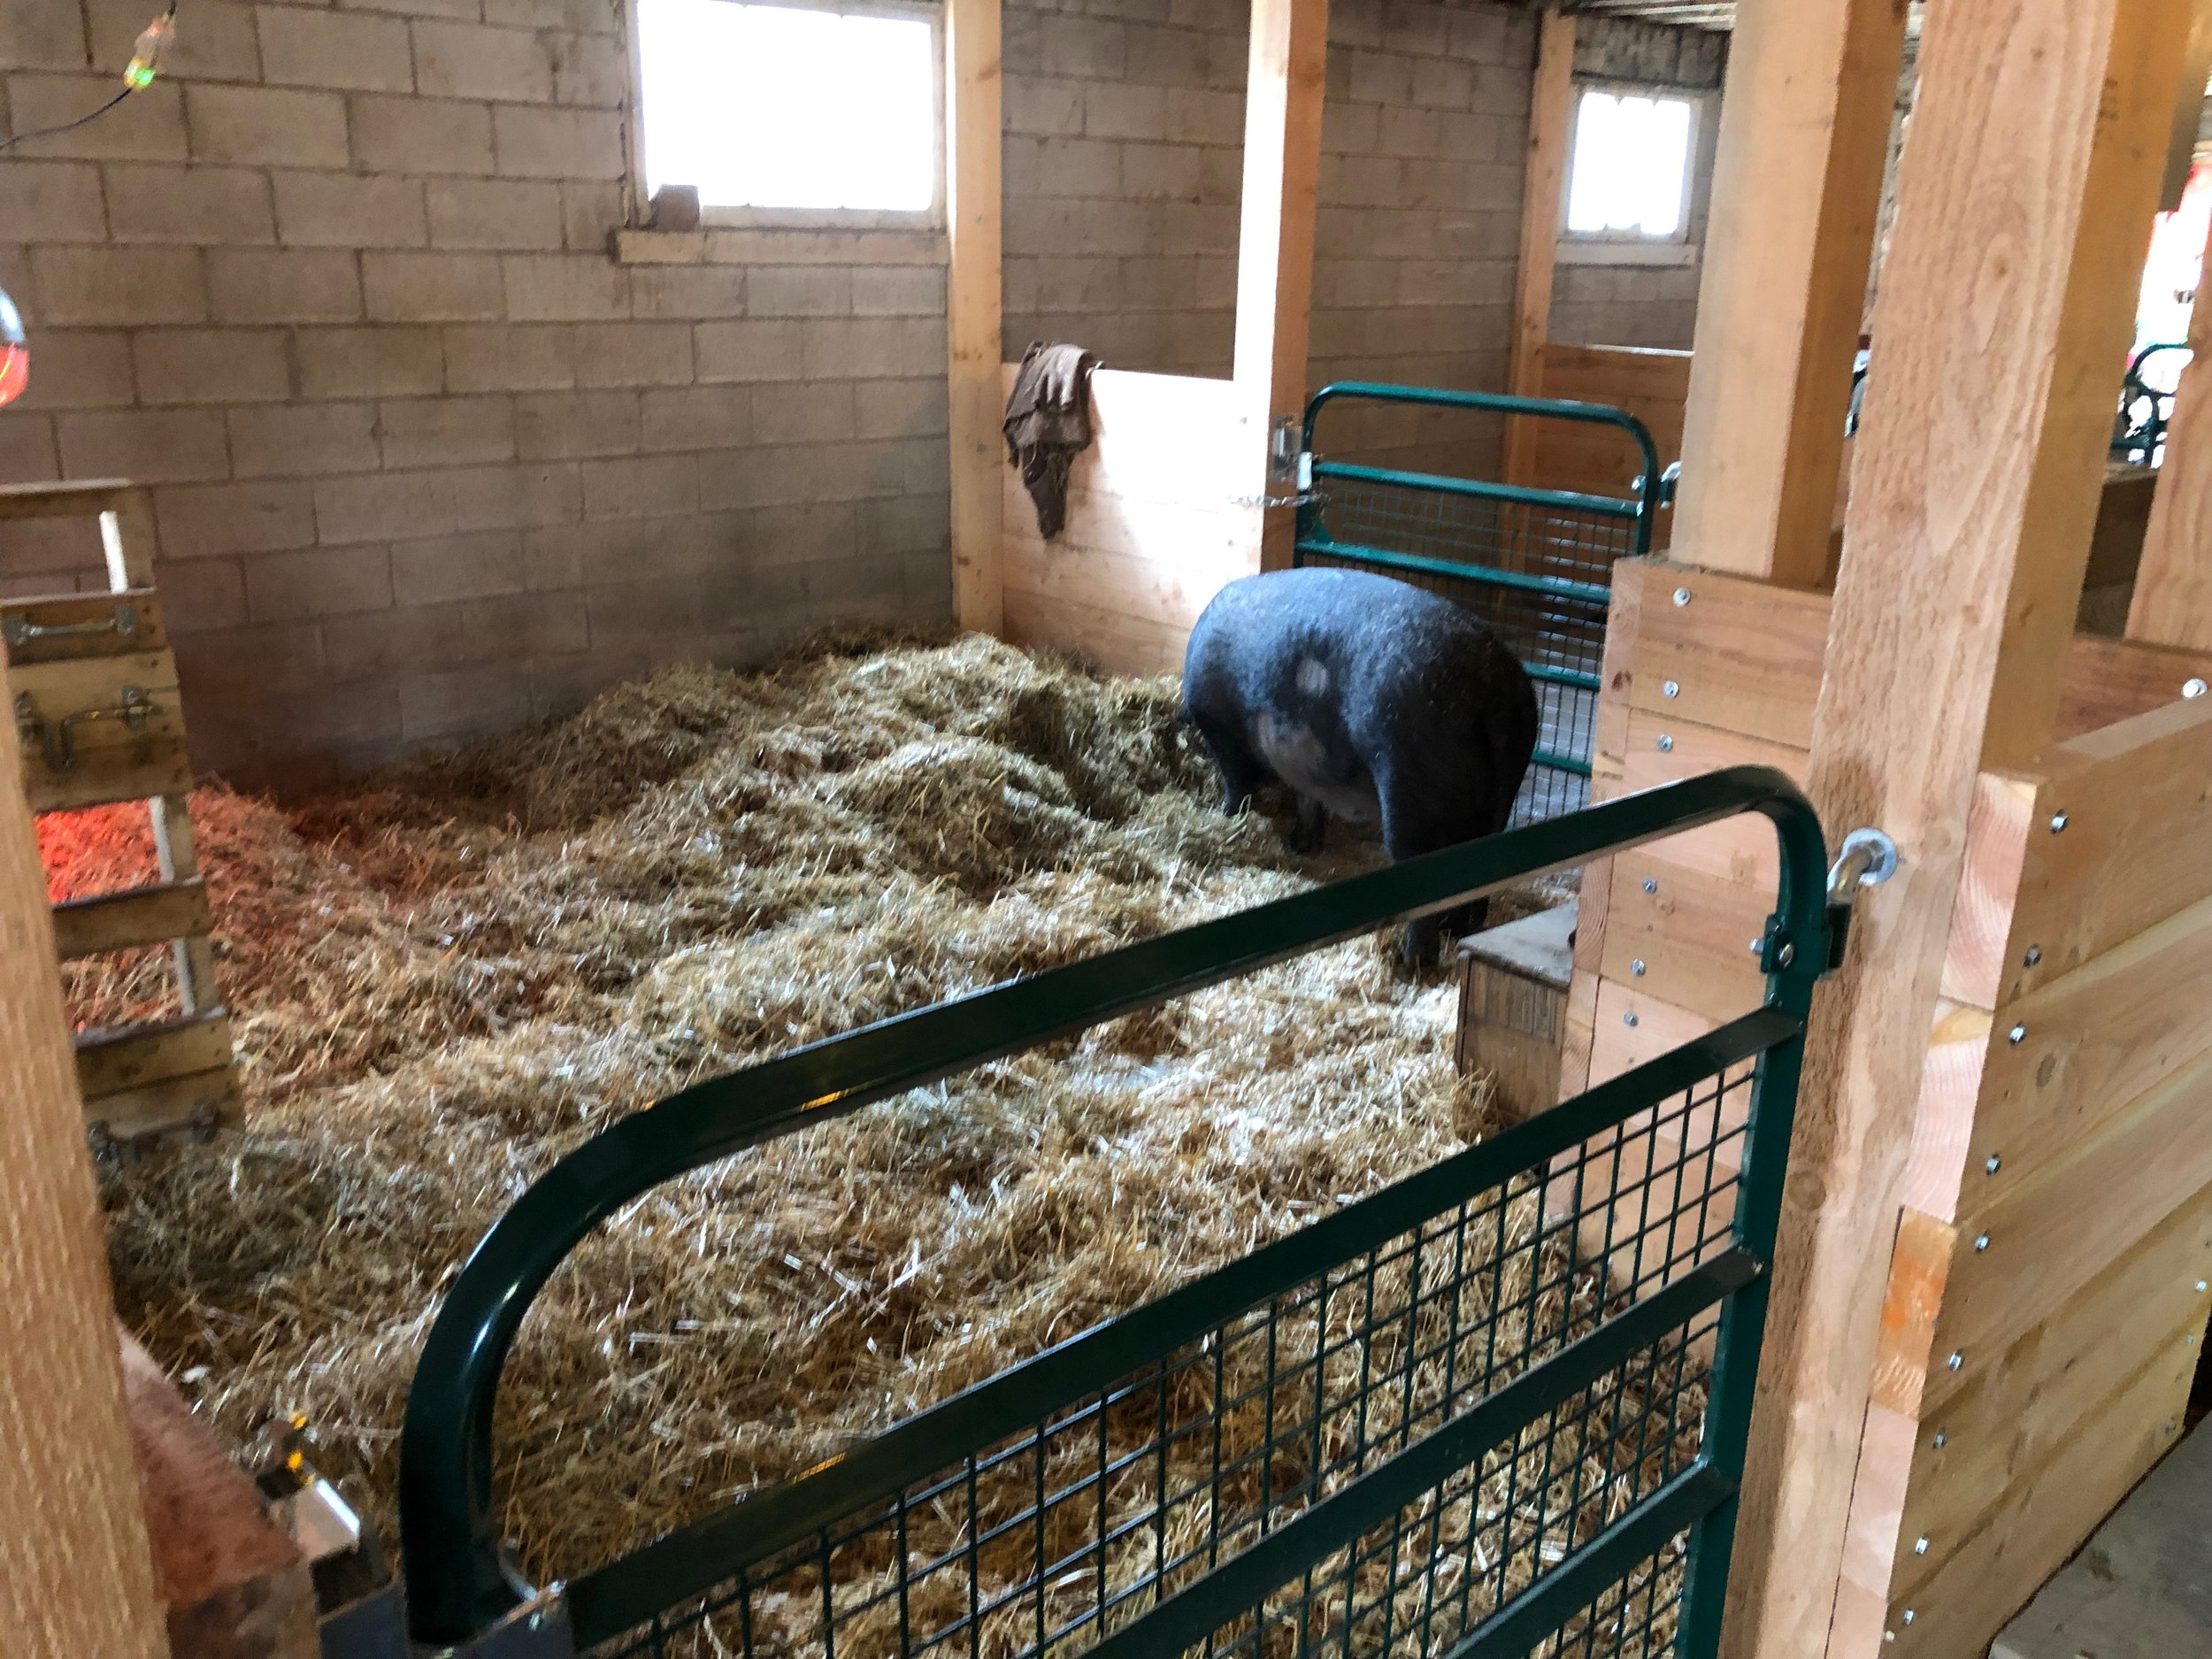 April checking out her new digs!